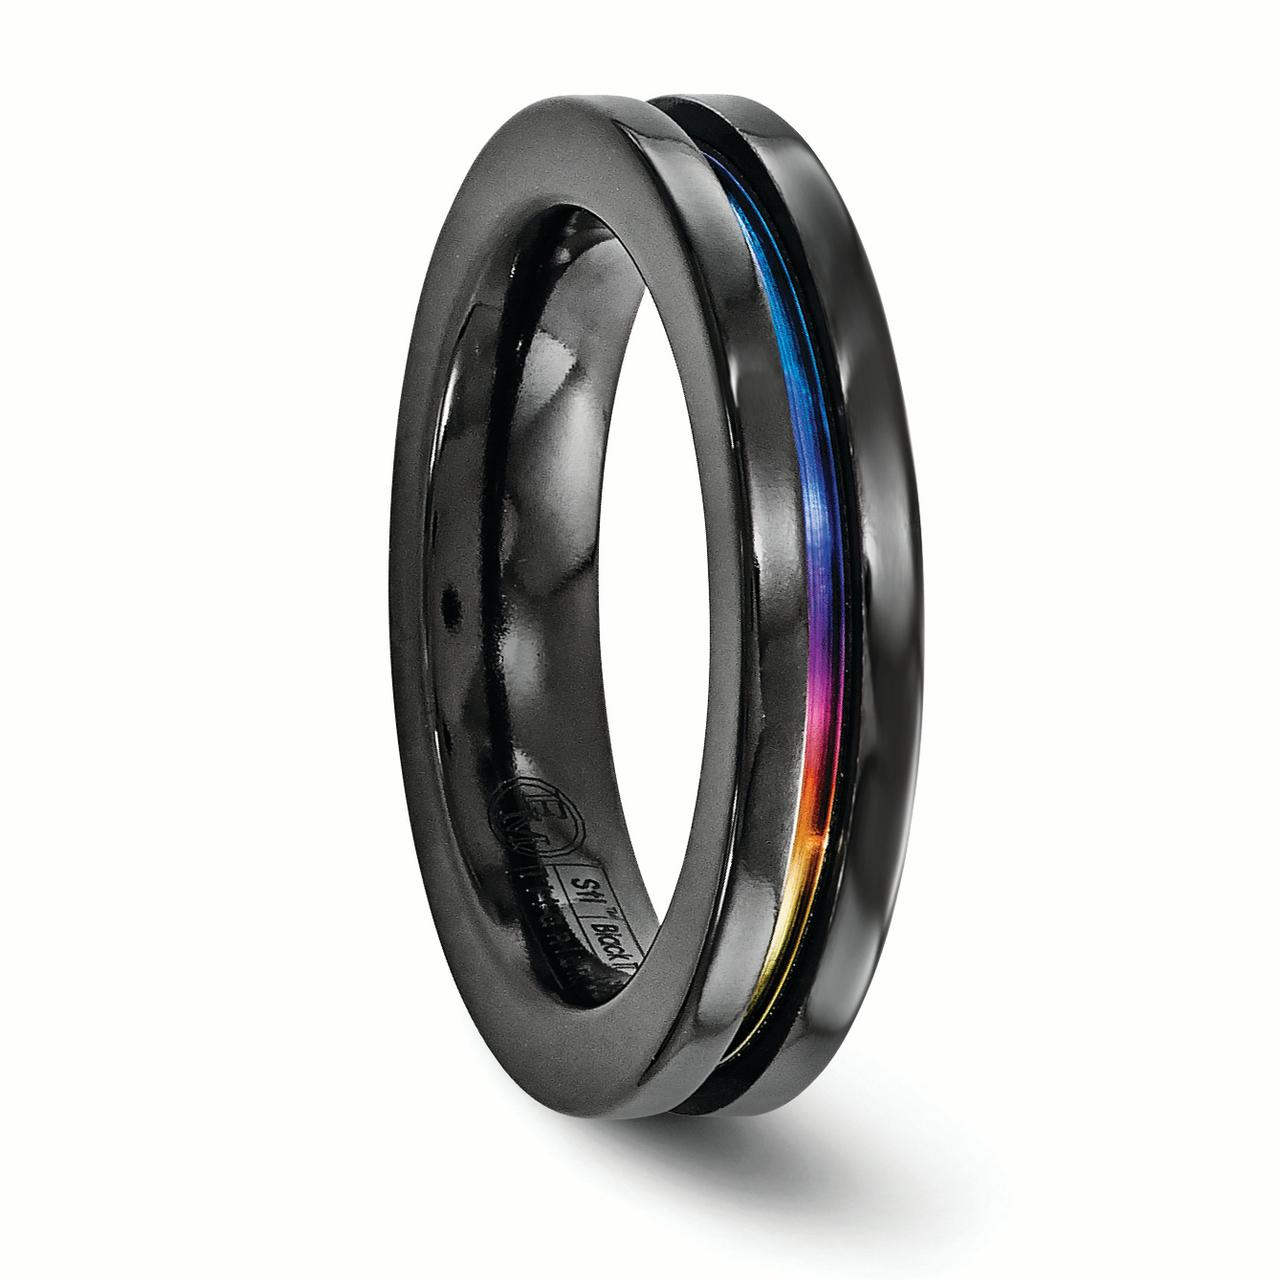 Edward Mirell Black Titanium Anodized 4mm Wedding Ring Band Size 9.00 Classic Flat Fancy Fashion Jewelry Gifts For Women For Her - image 4 of 7